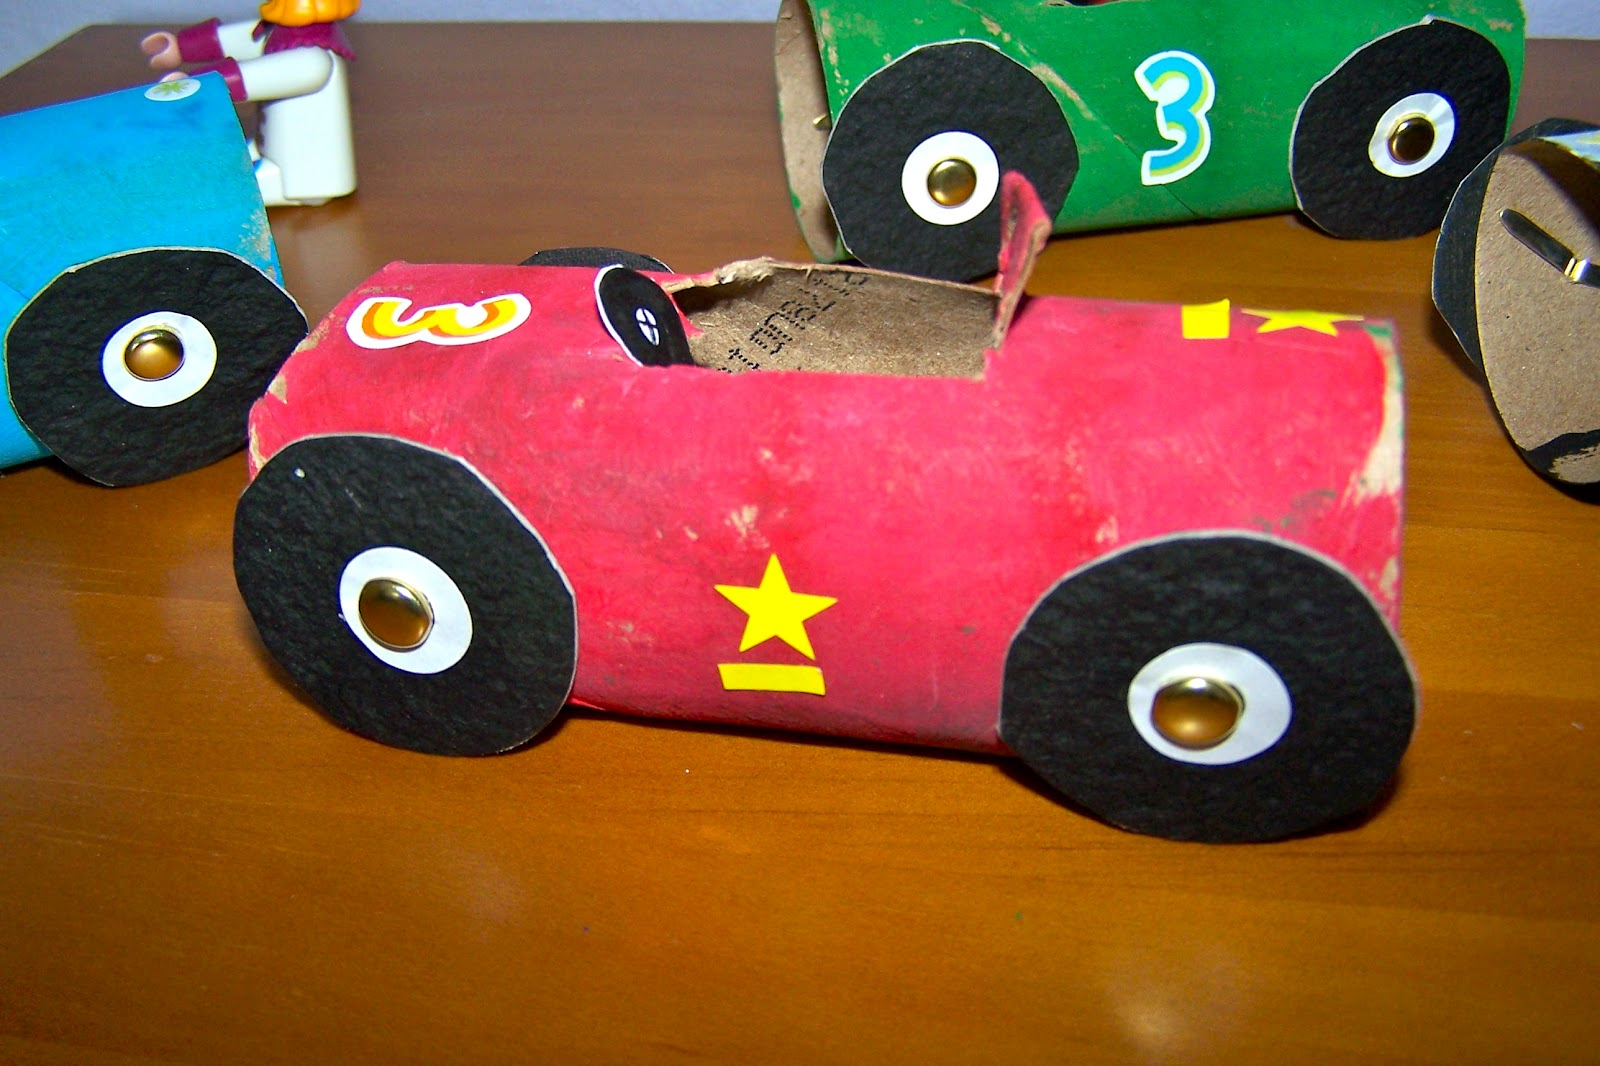 race paper Paper racing is an interesting and fun alternative style of racing game - it's a turn-based racing game the game simulates a car race on the sheet of paper.